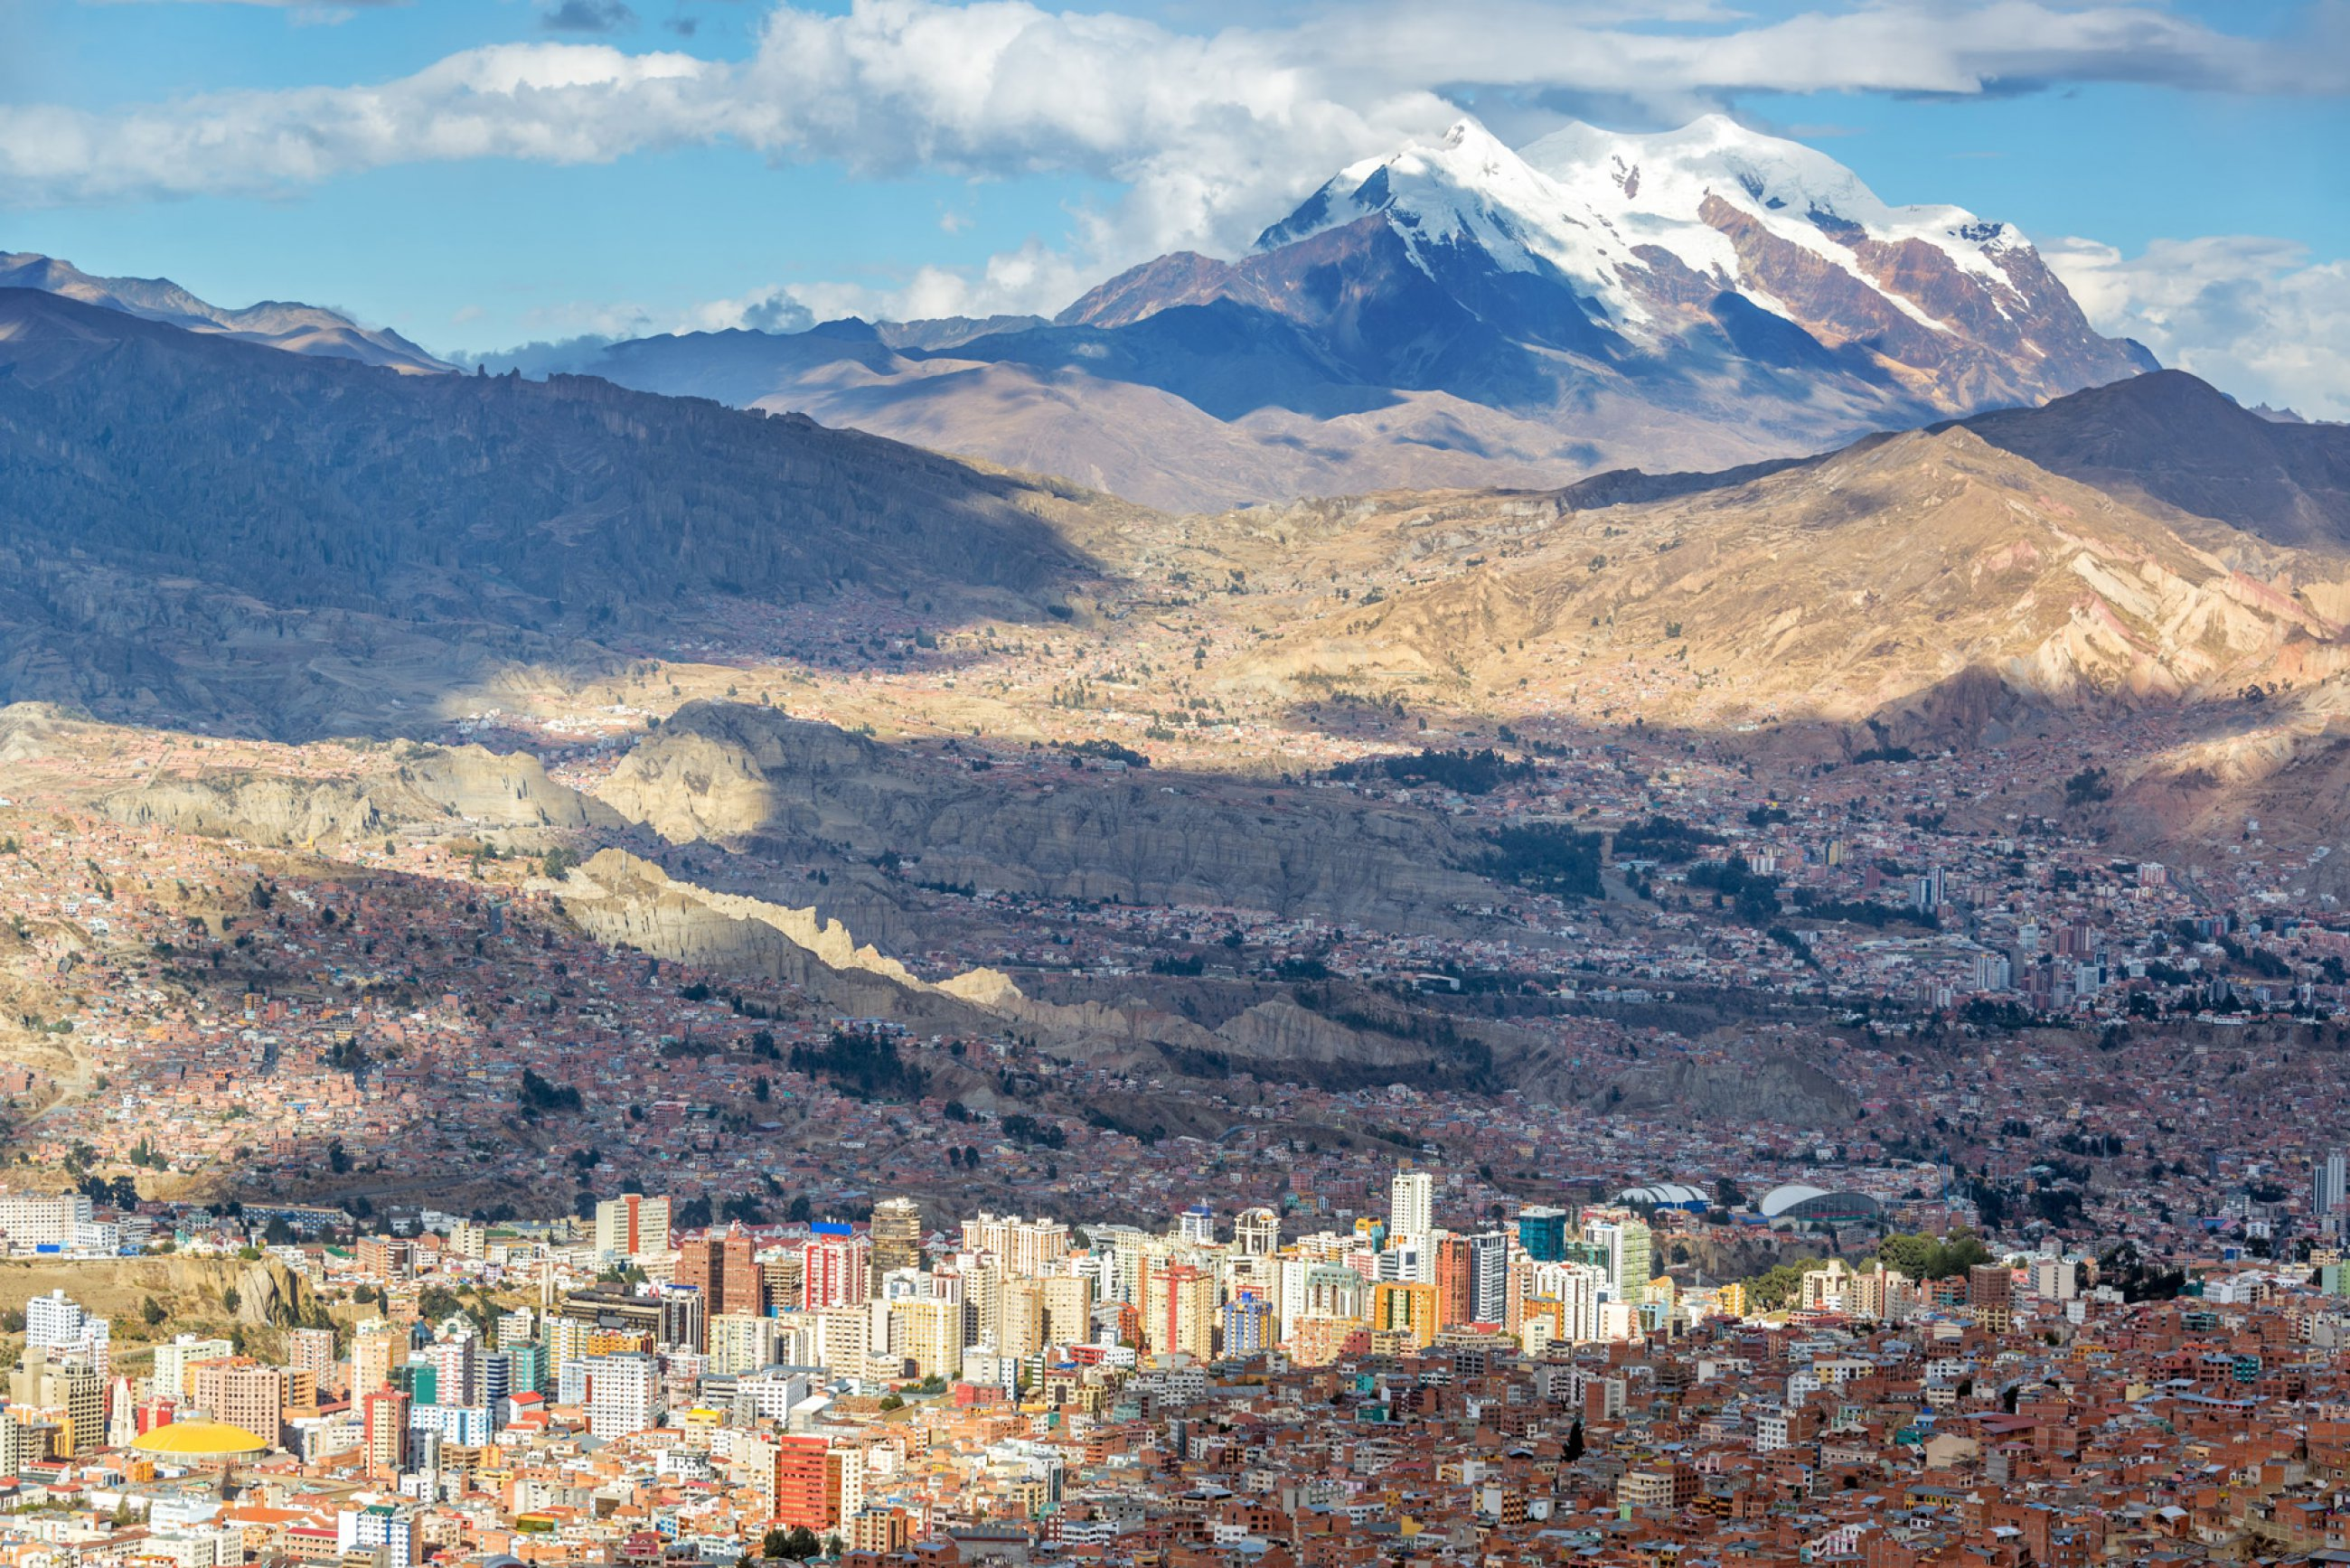 https://bubo.sk/uploads/galleries/16334/bolivia-la-paz-shutterstock-212973553.jpg